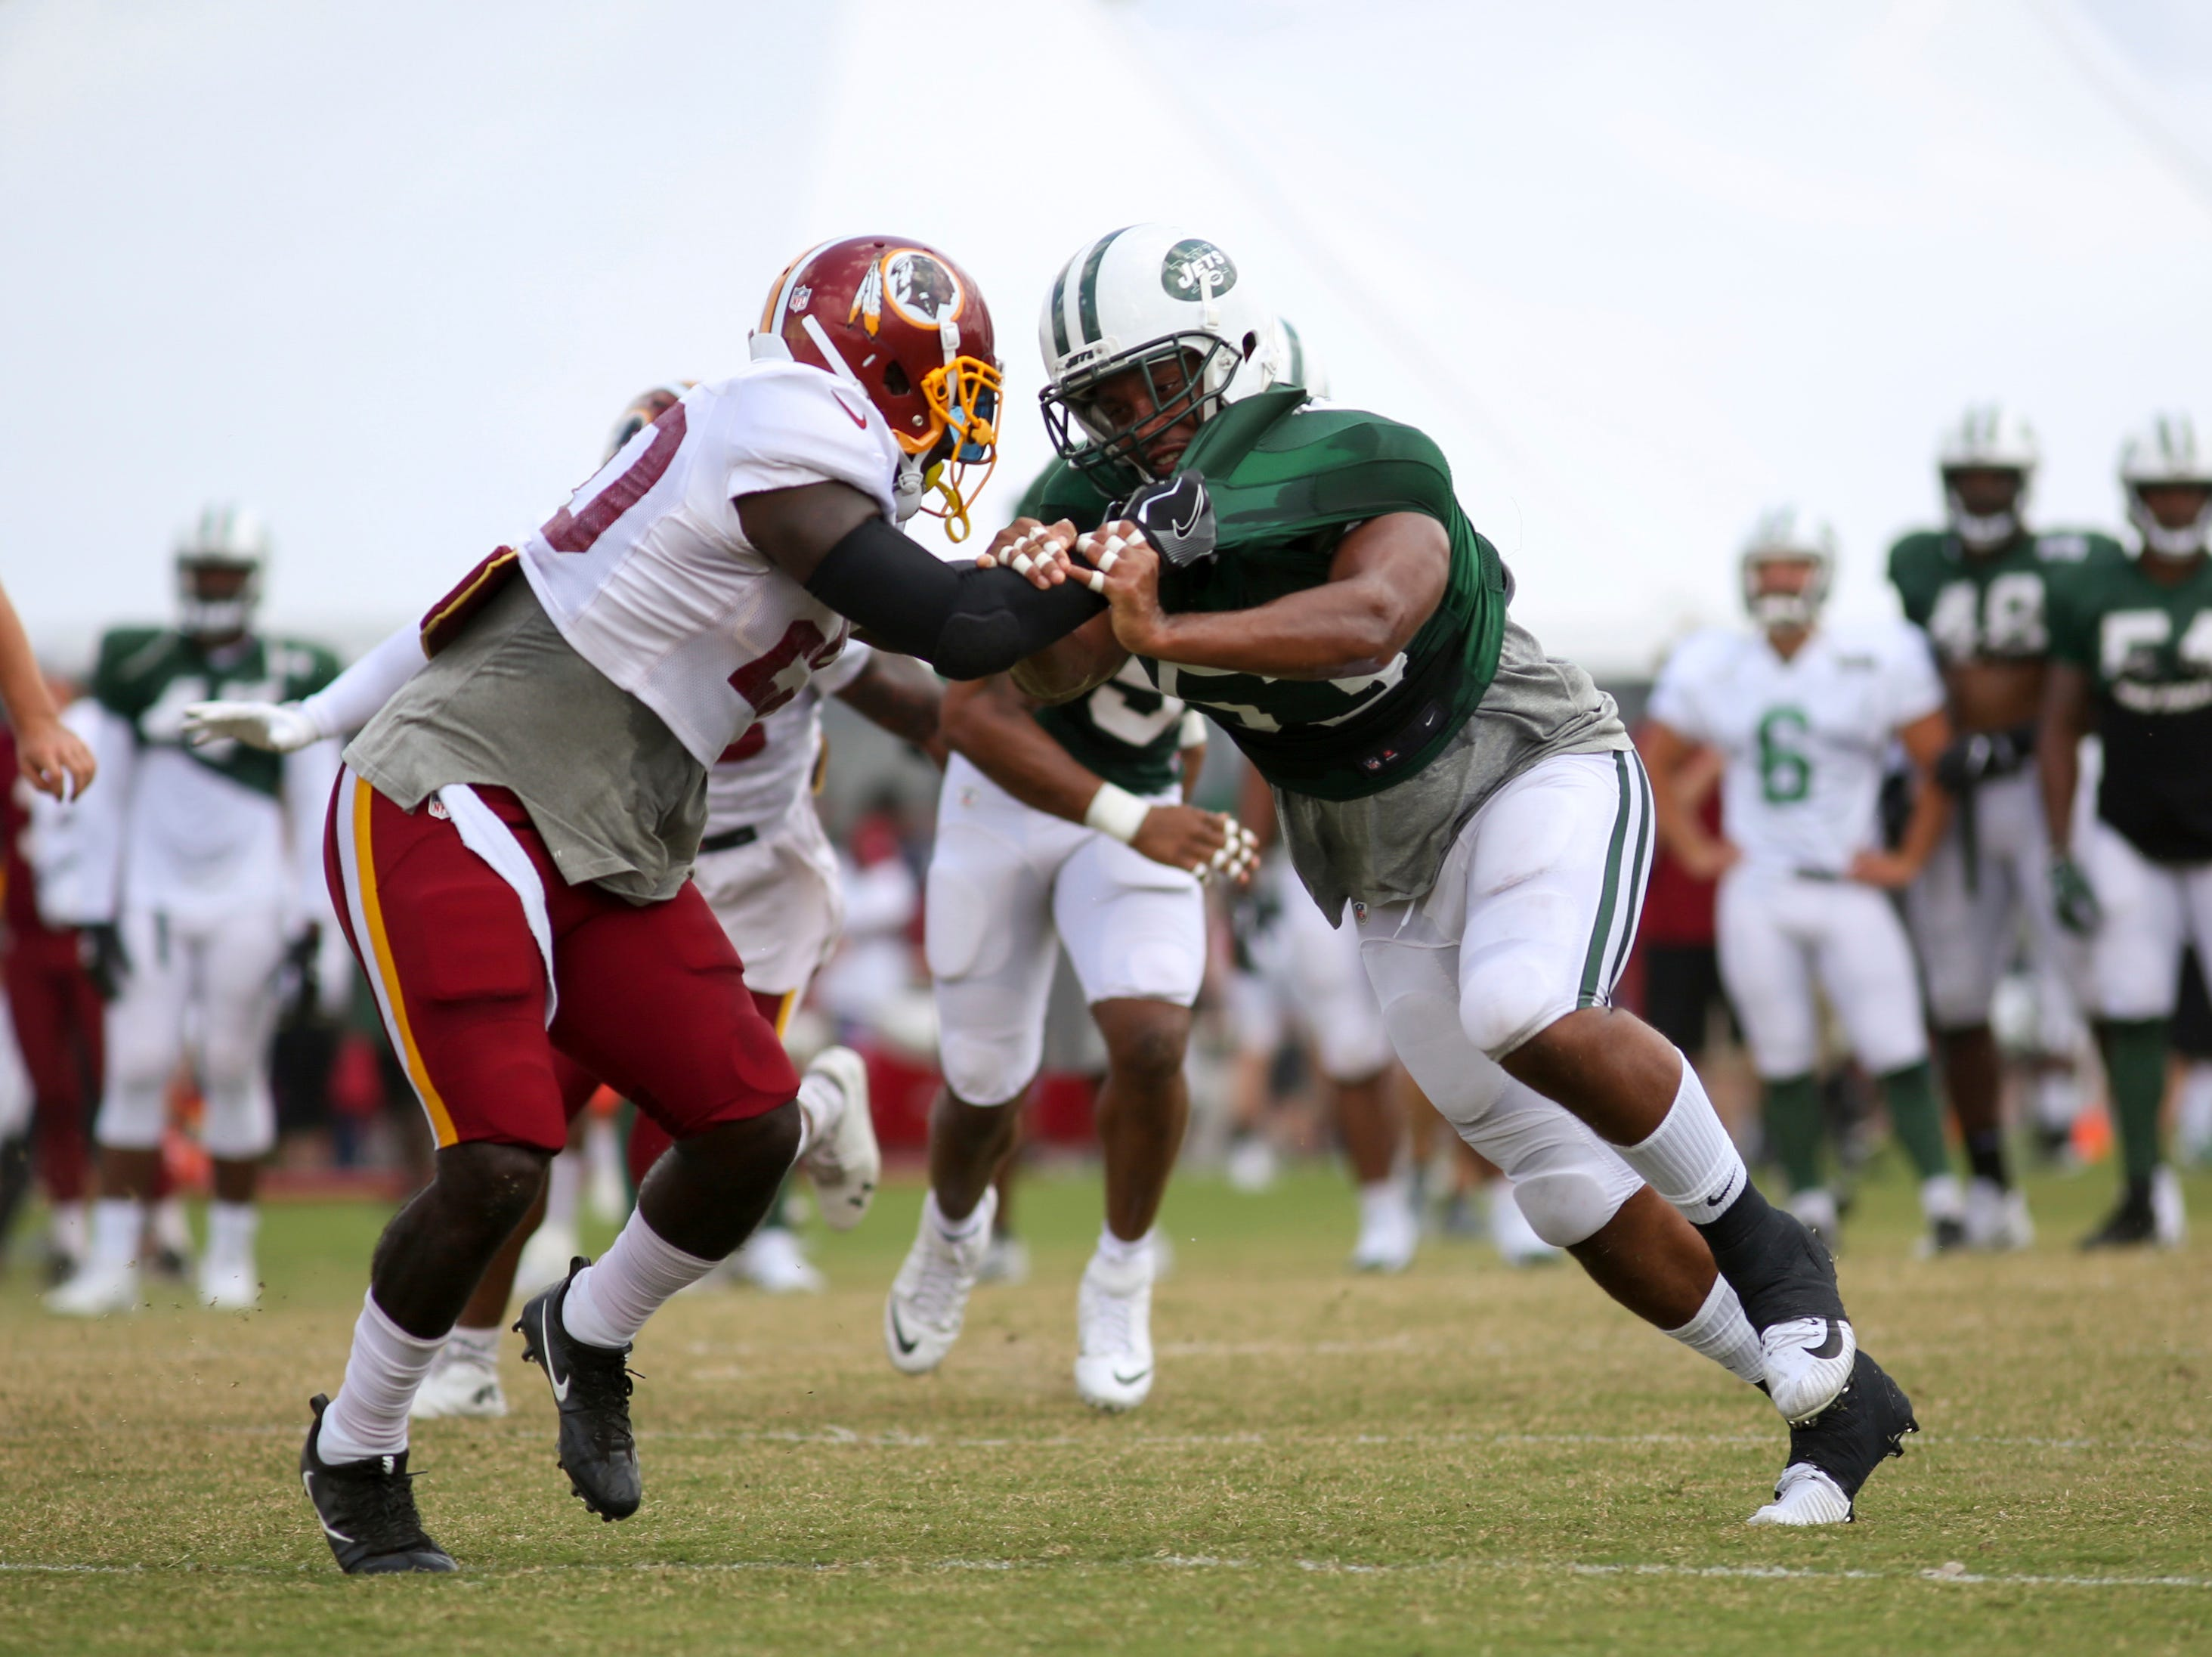 Washington Redskins running back Rob Kelley (20) blocks New York Jets linebacker Kevin Minter at their joint practice in Richmond on Sunday.